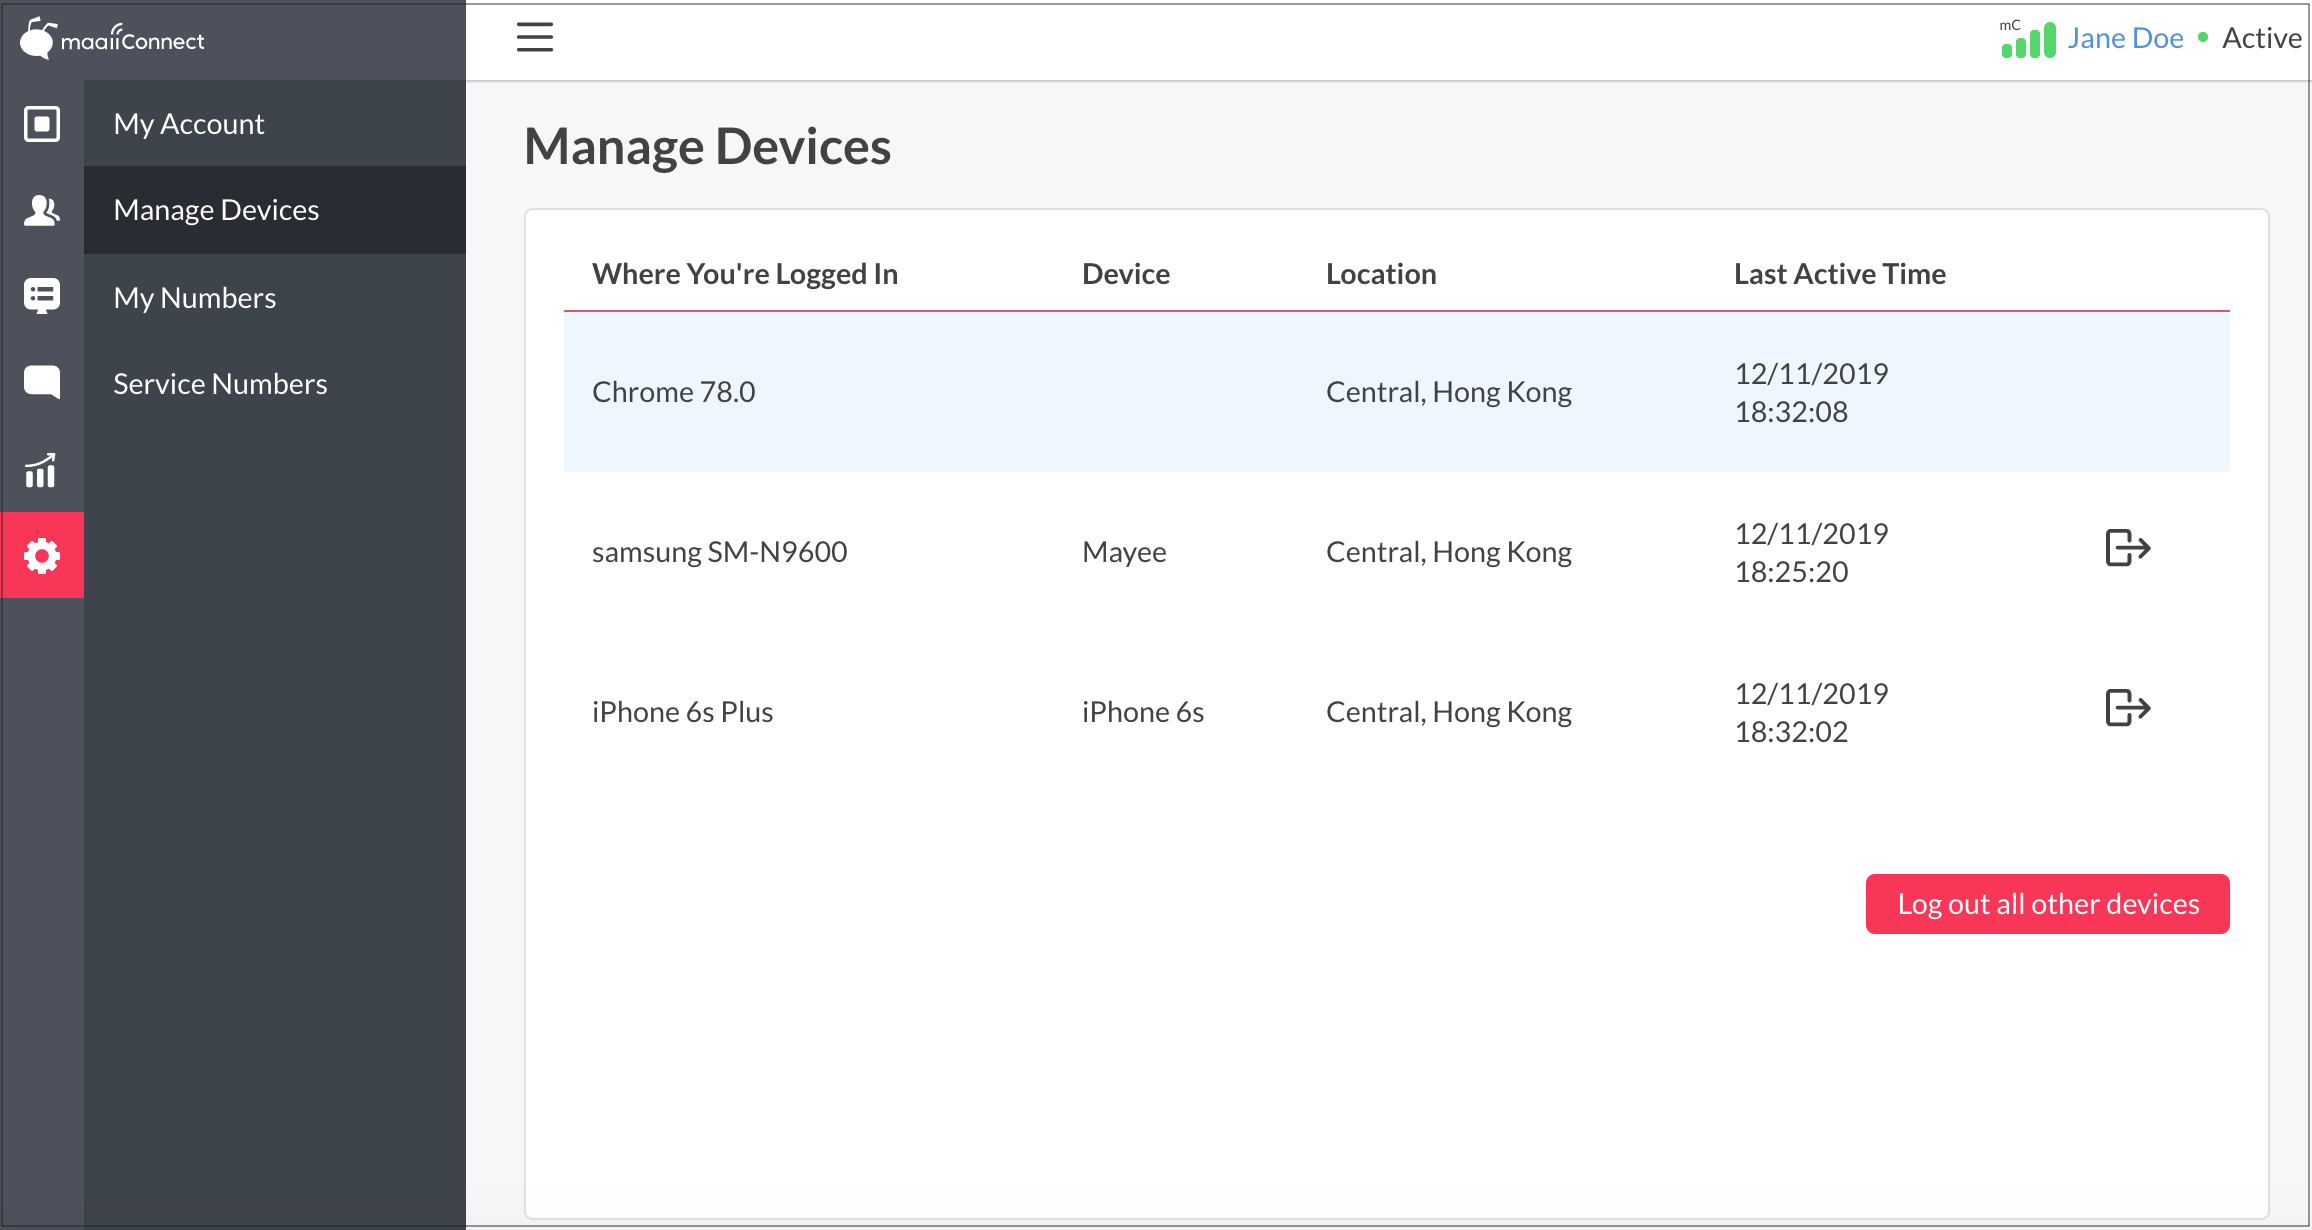 Manage Devices View